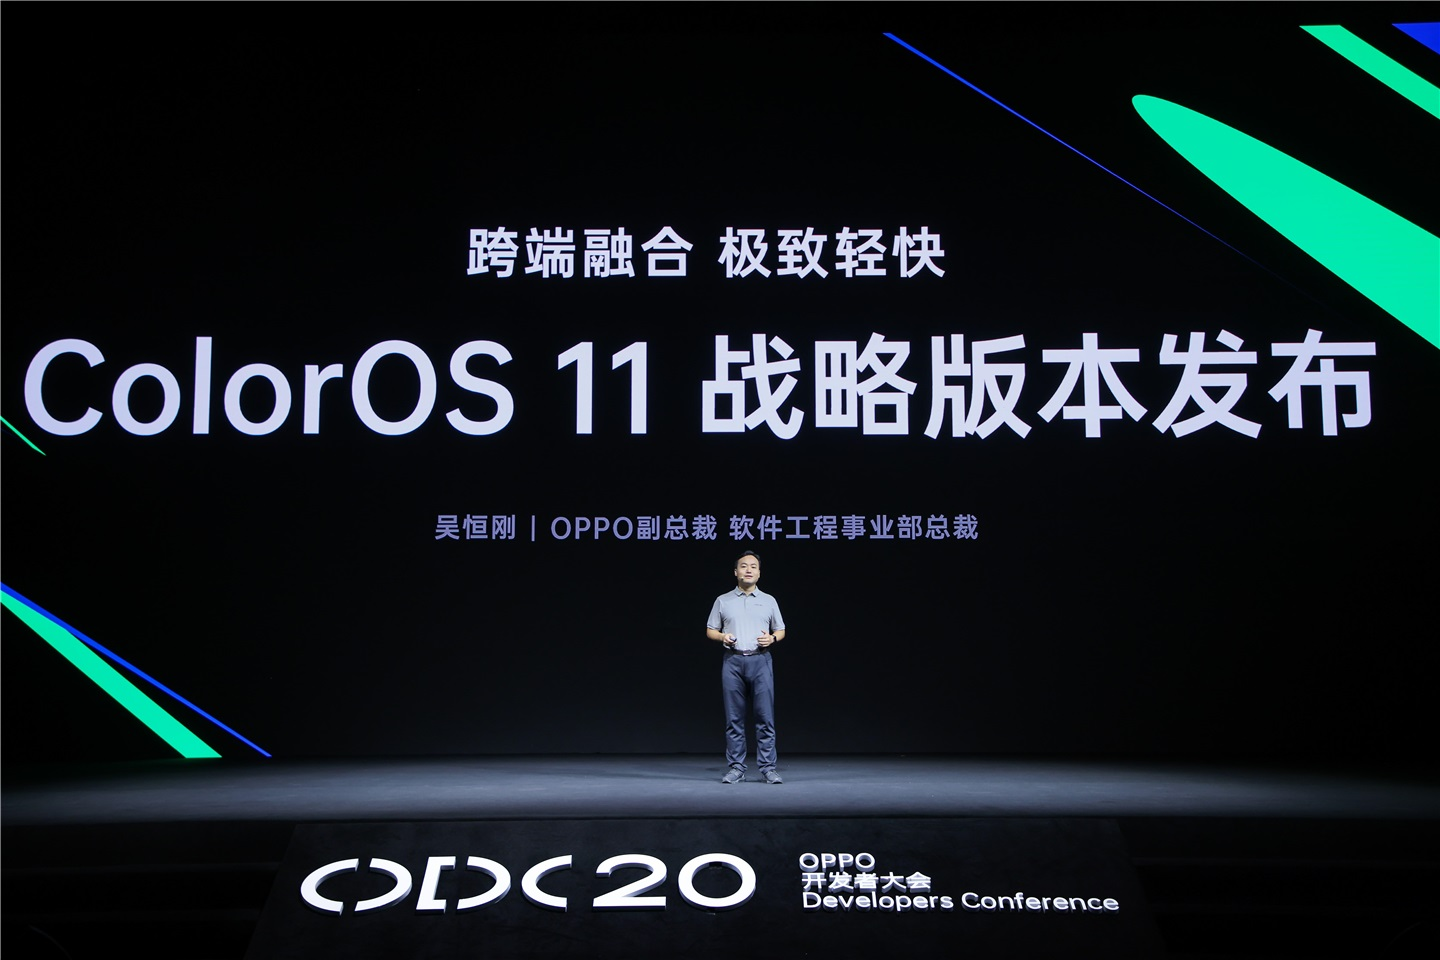 OPPO announces ColorOS 11 in China, brings more personalized settings and privacy upgrades-cnTechPost